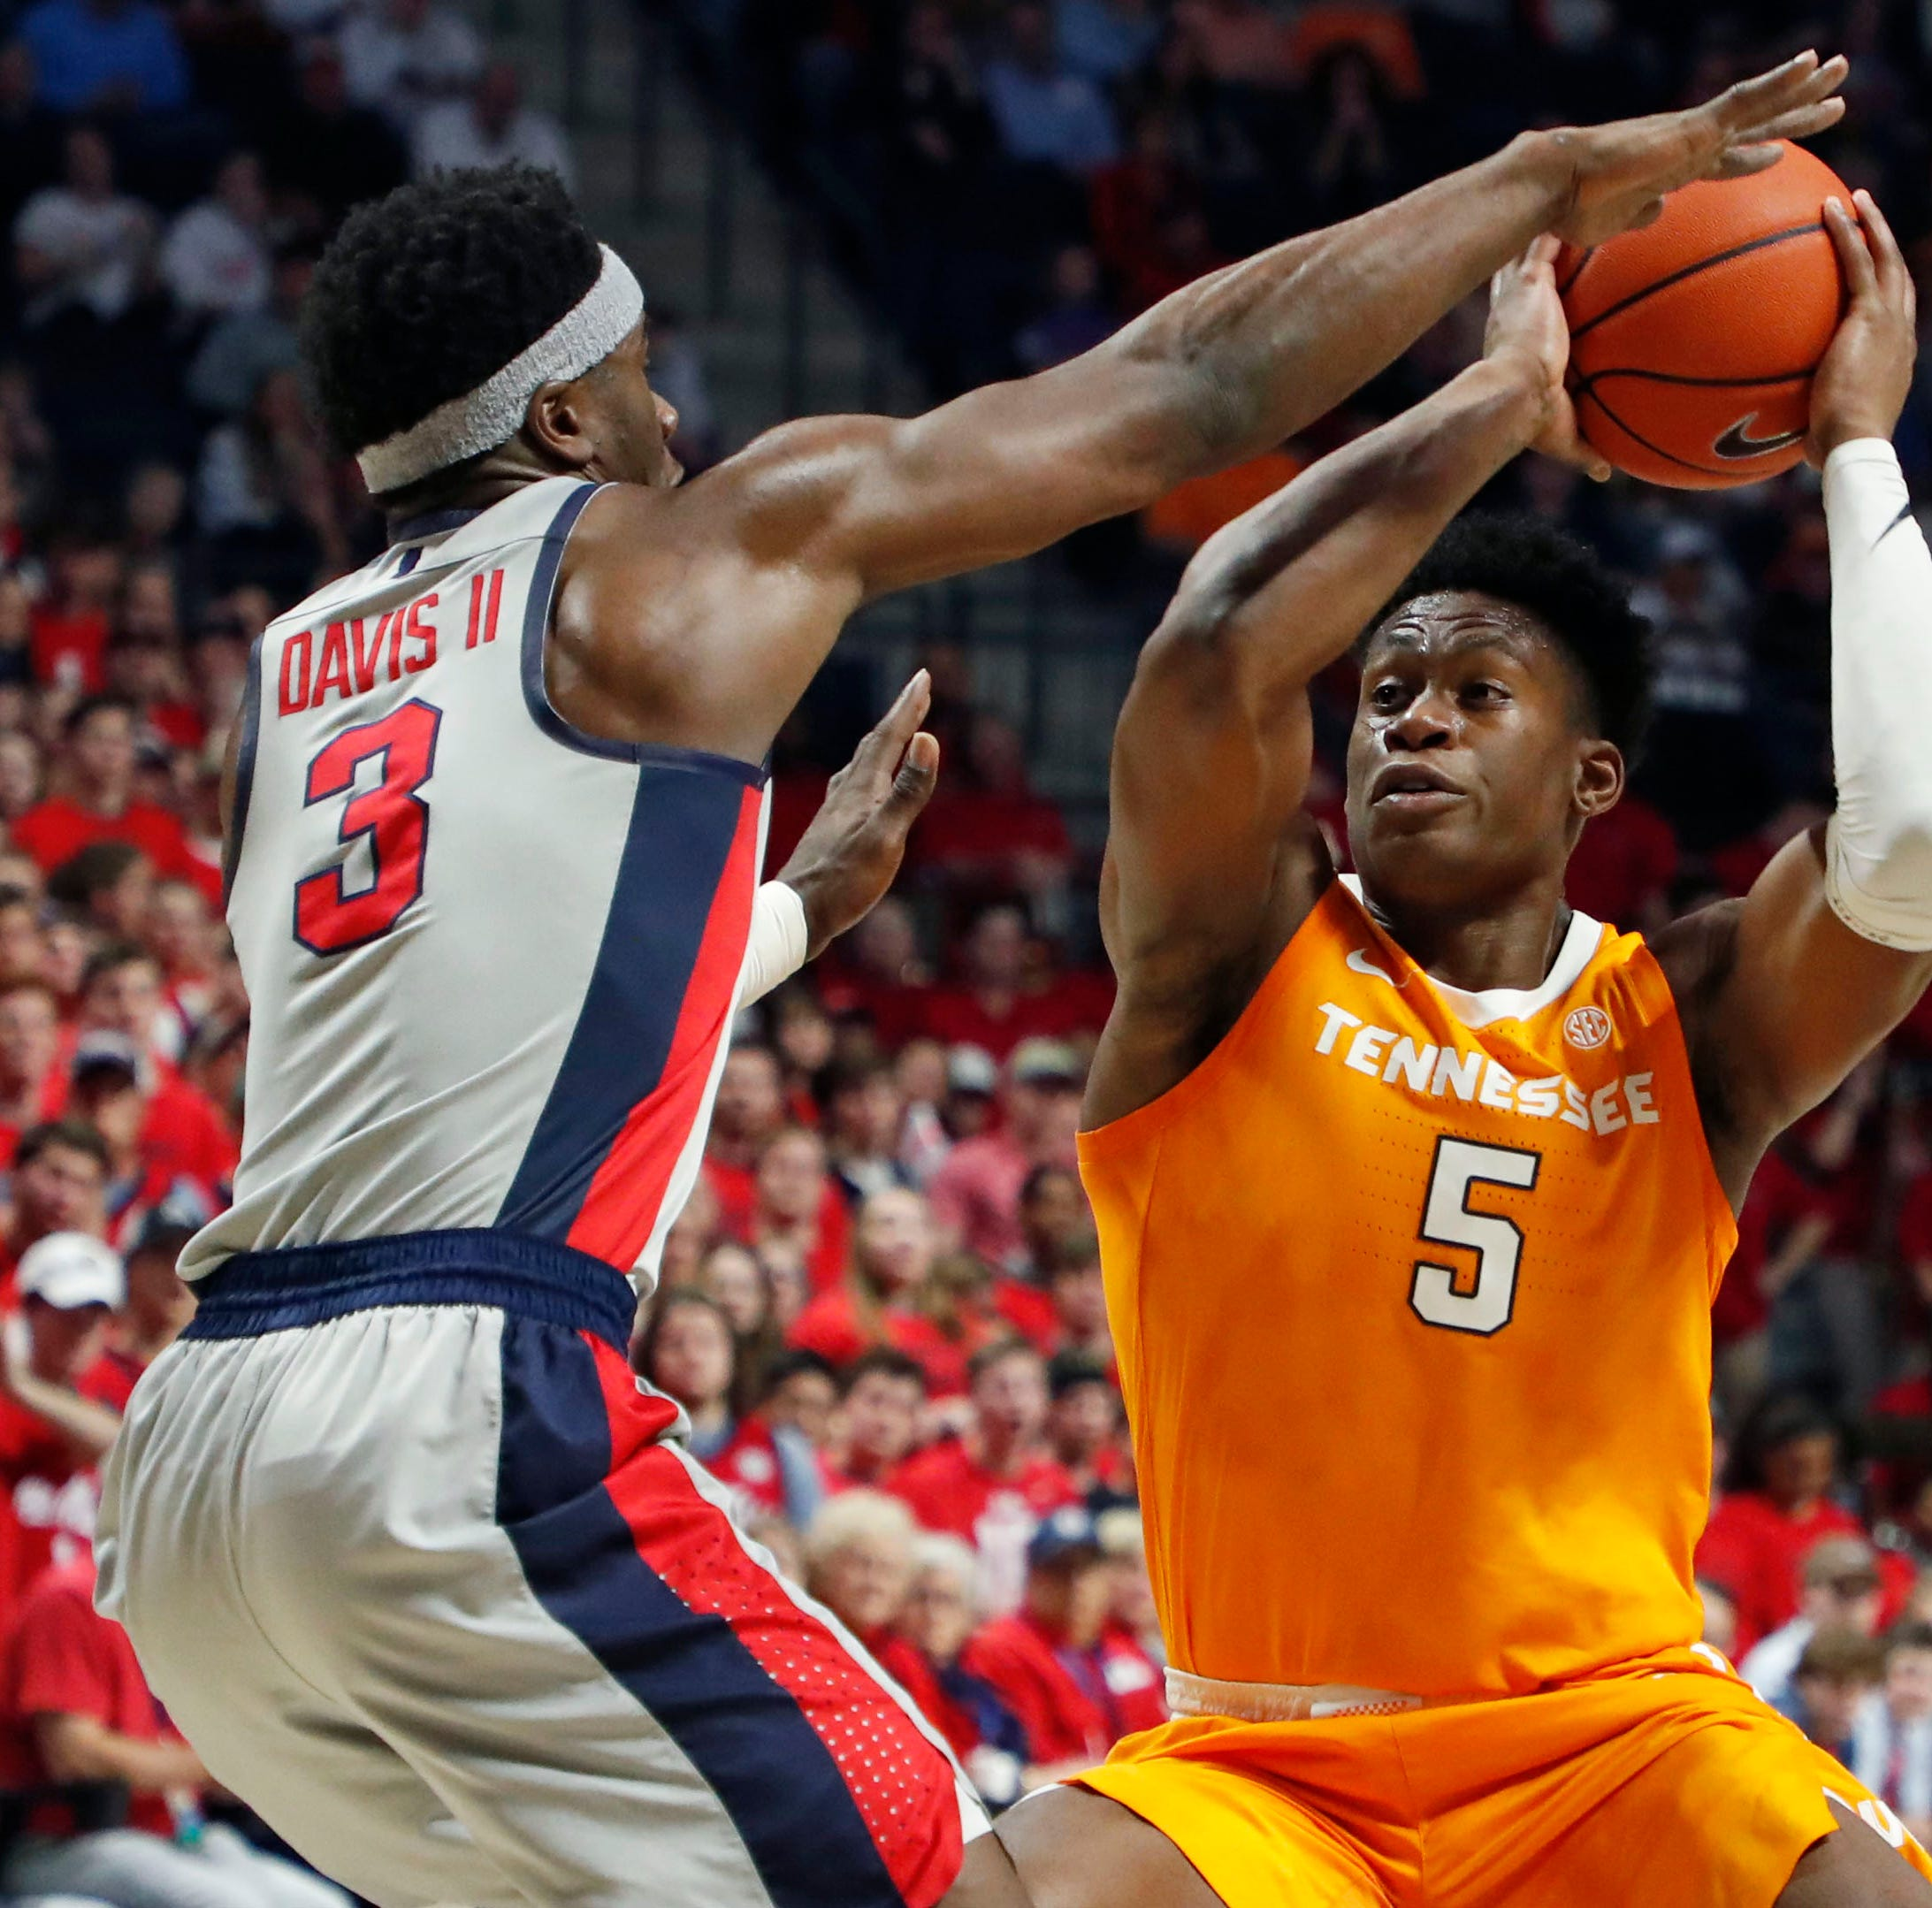 Tennessee basketball: Admiral Schofield explains taking 'risky' last-second charge at Ole Miss